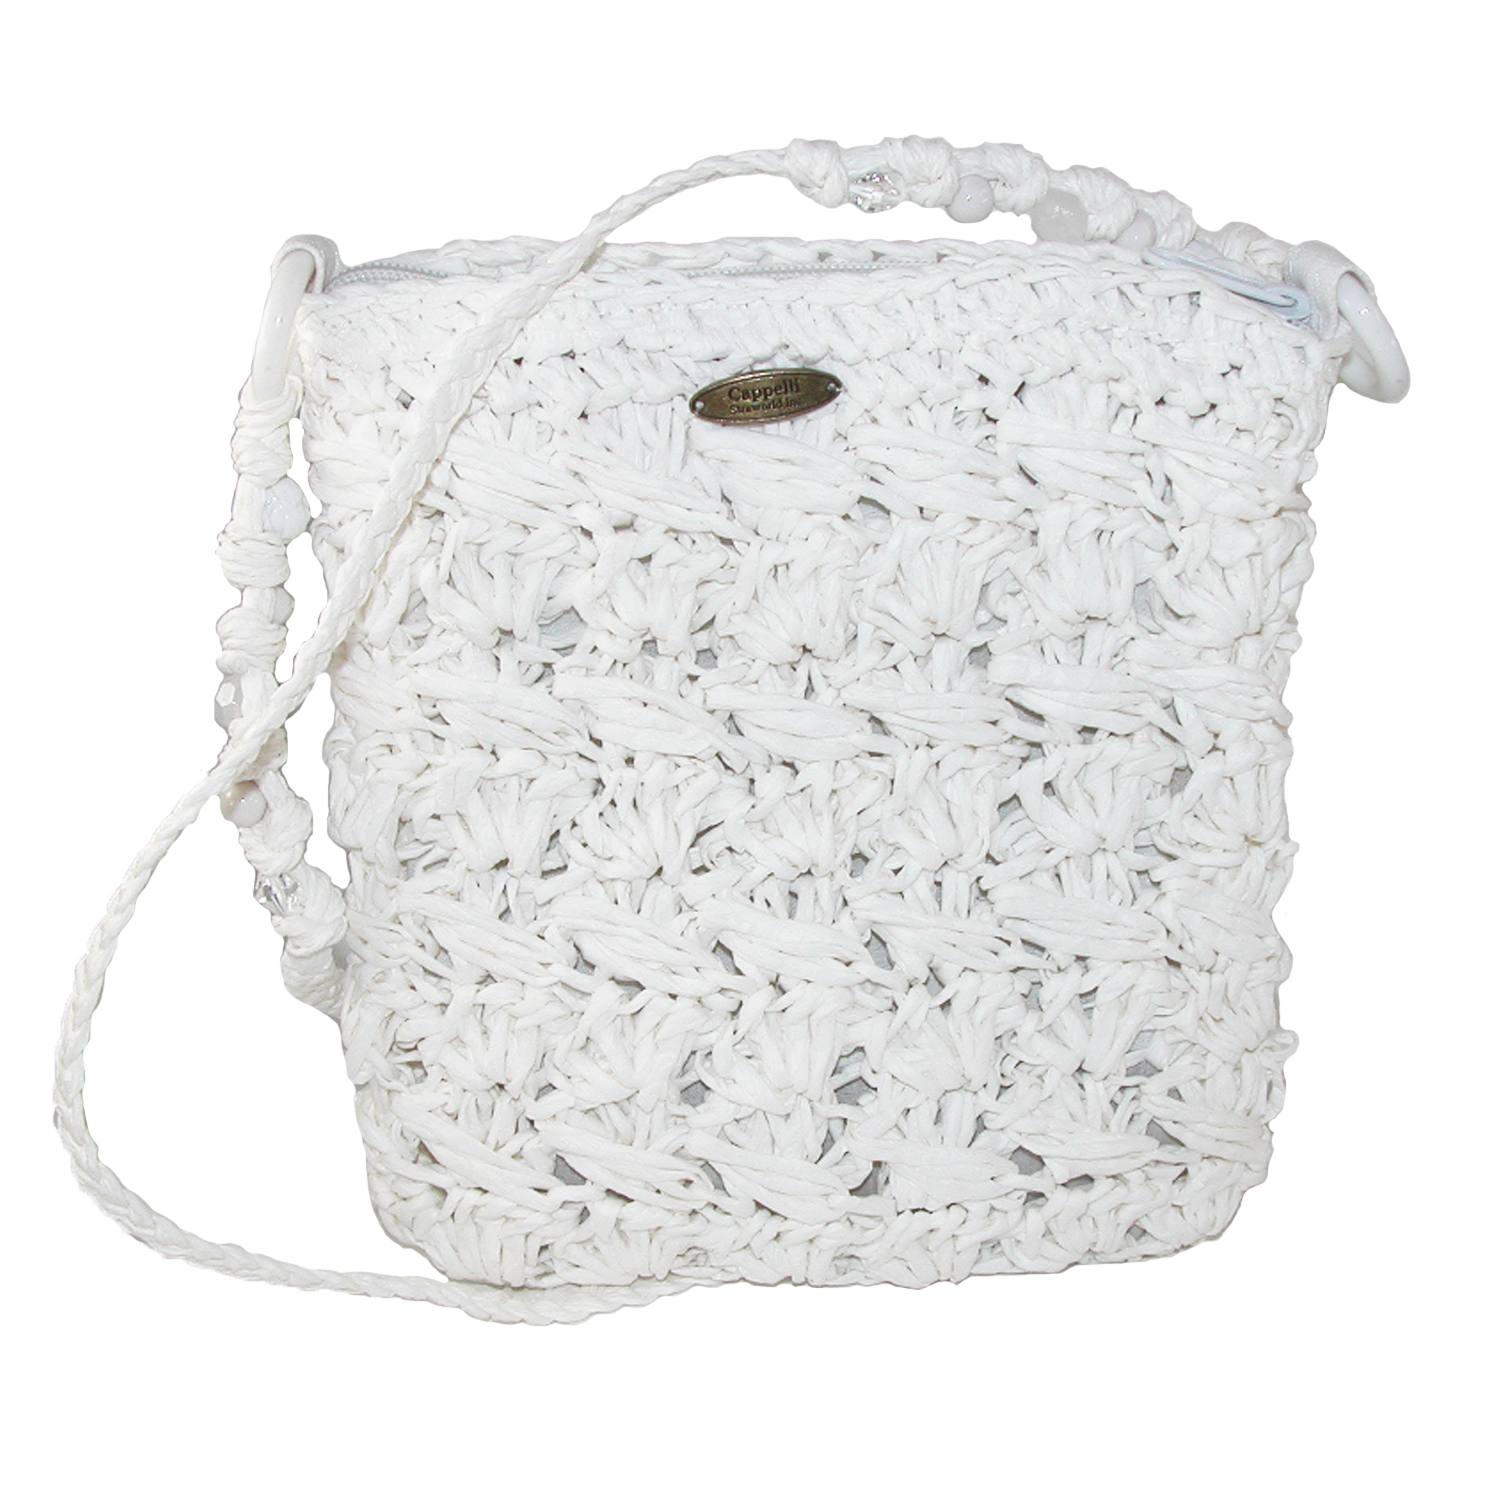 Cappelli  Womens Crocheted Crossbody Handbag with Beaded Strap,